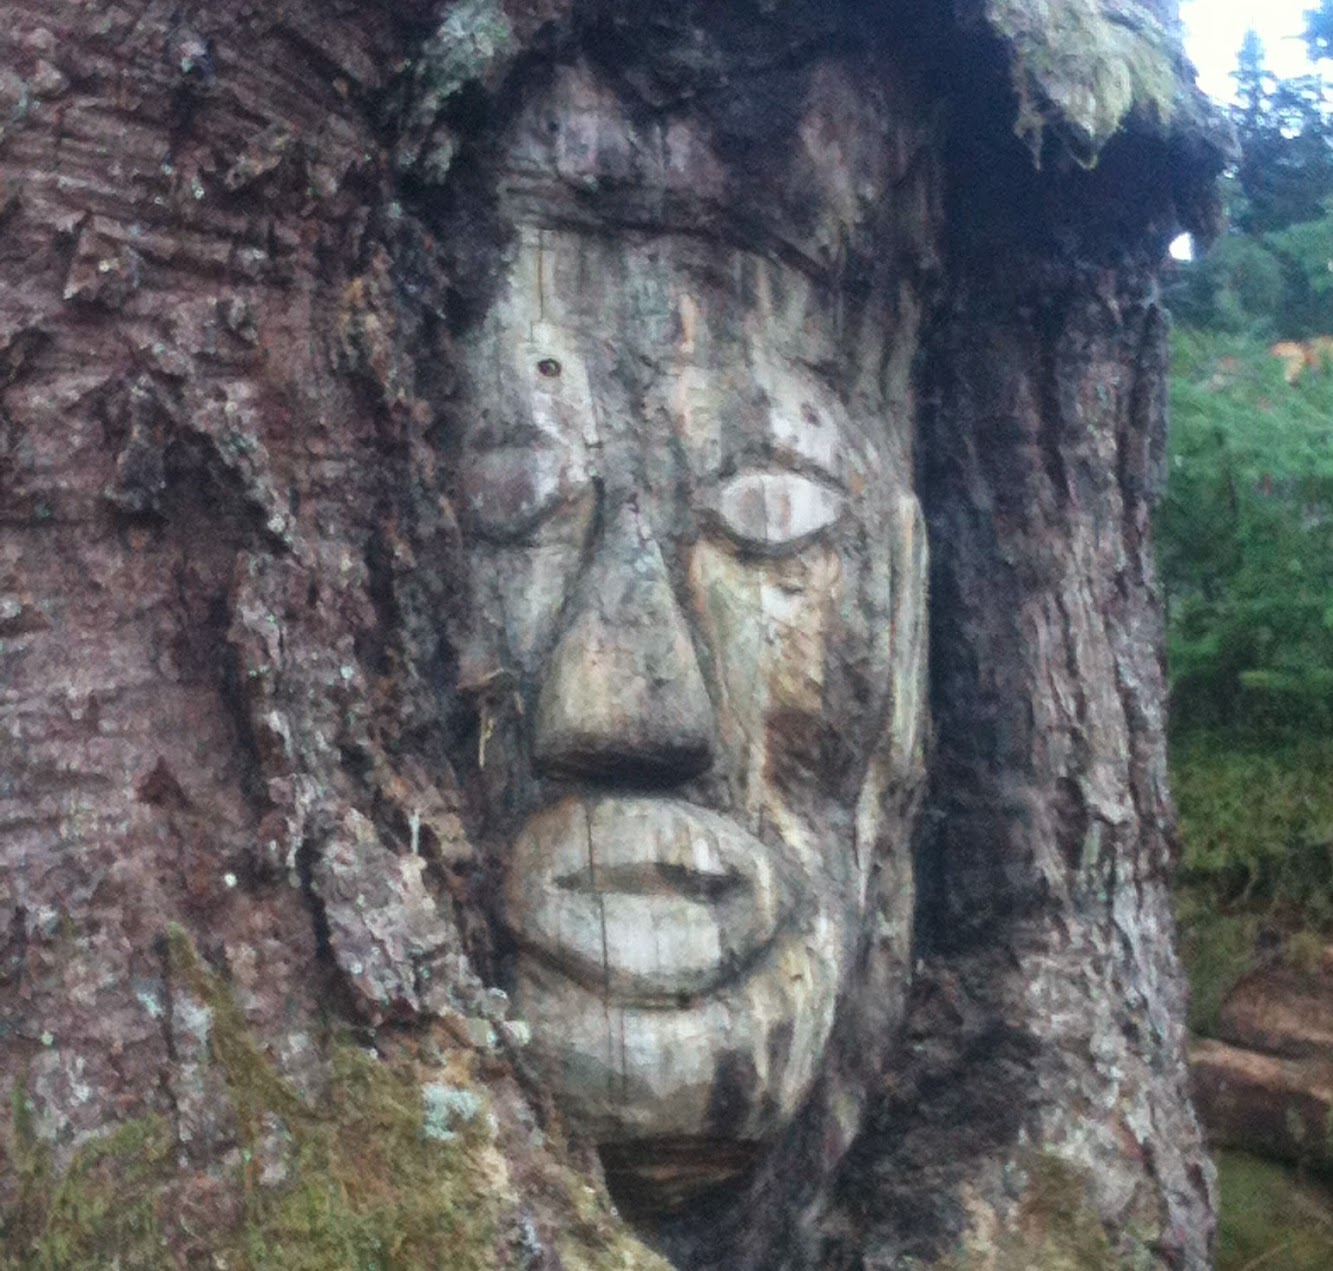 More Stuff: Loggers find 200 year old face carved in tree